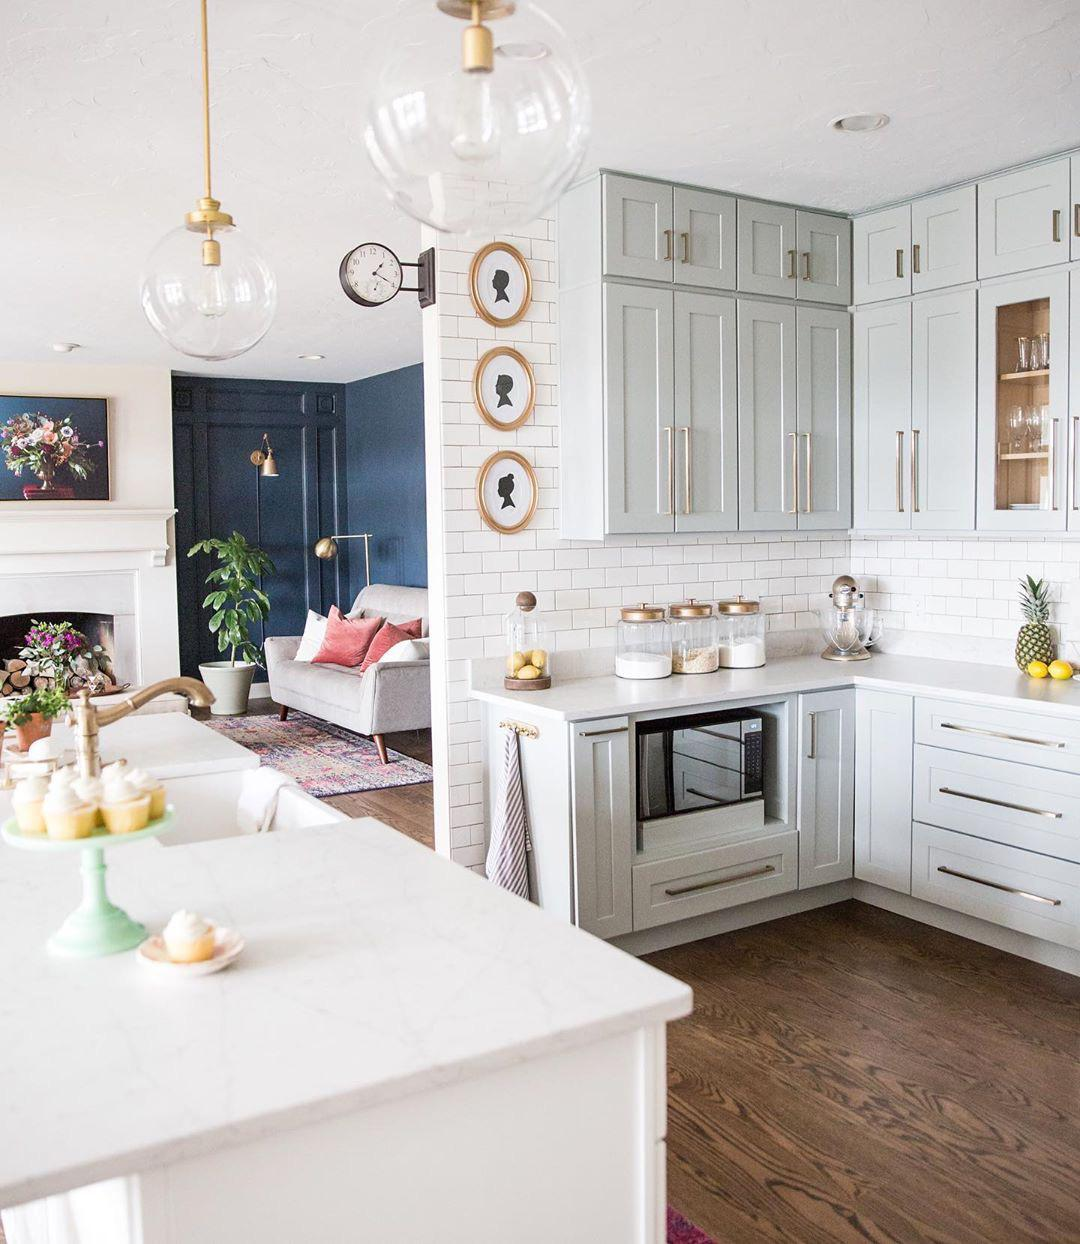 Inspiring Kitchen Design Ideas For Your Home - Page 33 of 35 - Liatsy Fashion